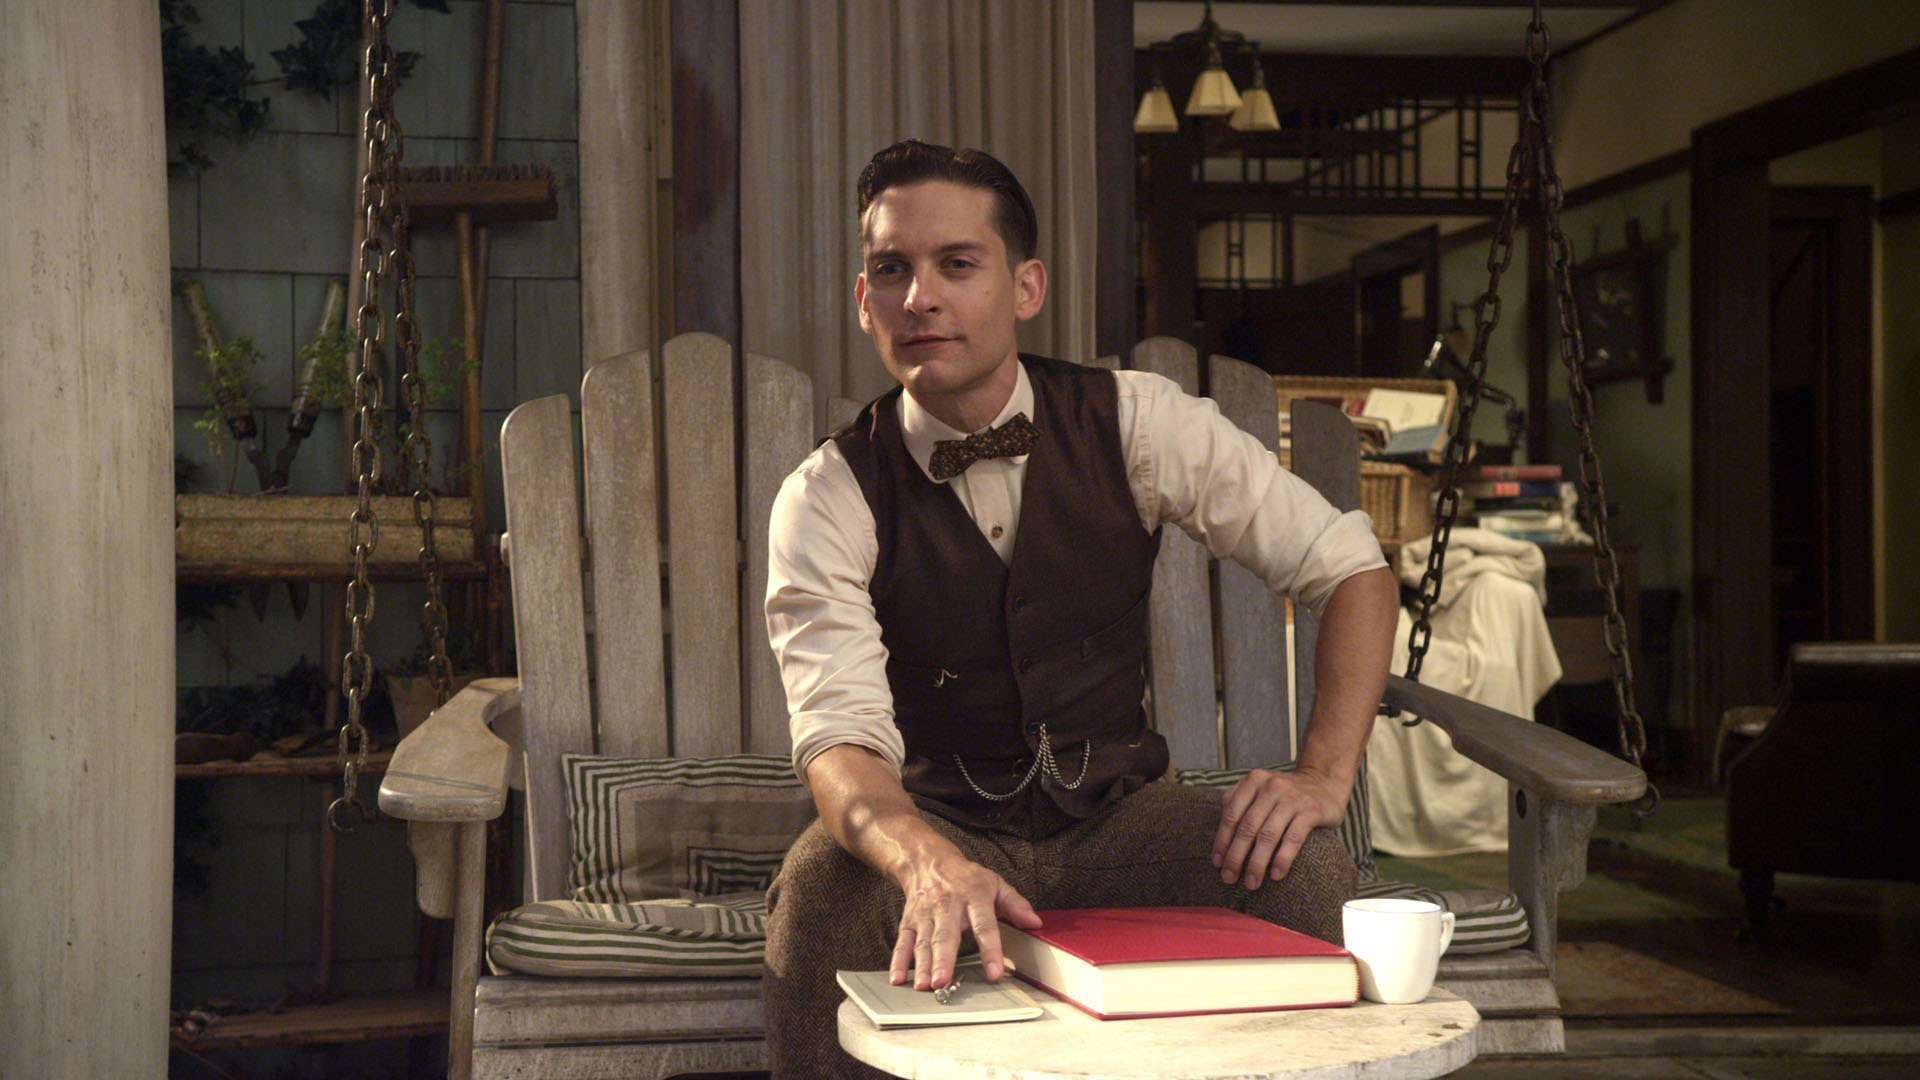 nick carraway the perfect narrator for the Nick carraway, the novel's narrator and protagonist, begins the great gatsby by recounting a bit of (full context) for instance, nick says that though he scorns everything gatsby stood for, he withholds judgment entirely regarding him.